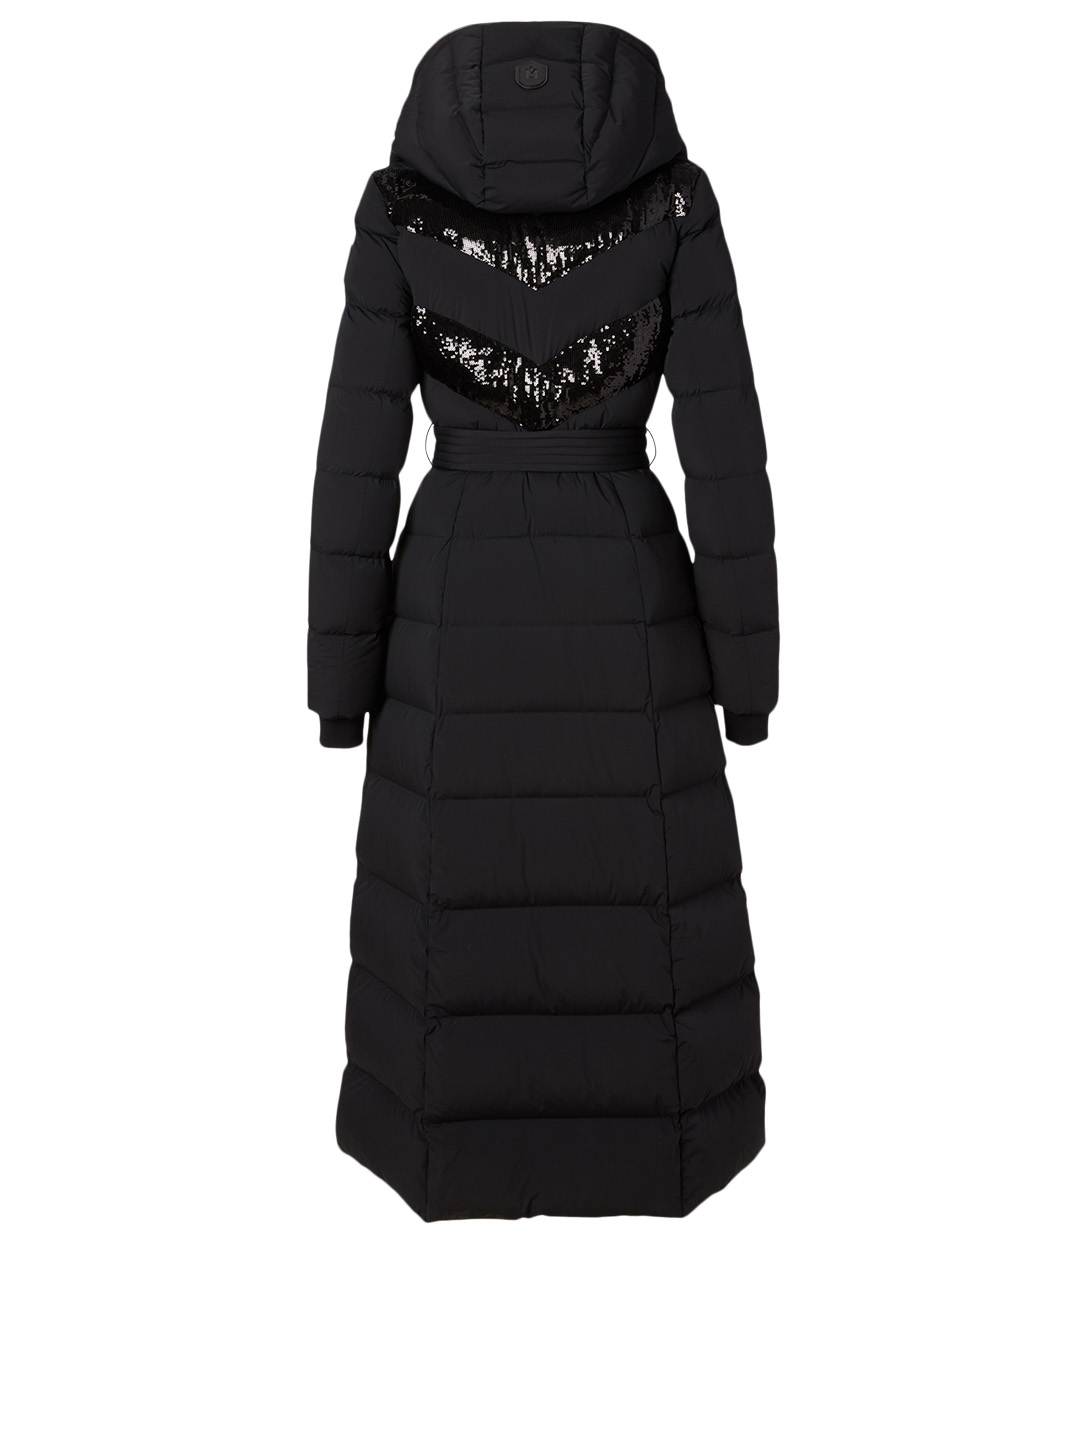 MACKAGE Adina Down Long Coat With Sequins Women's Black